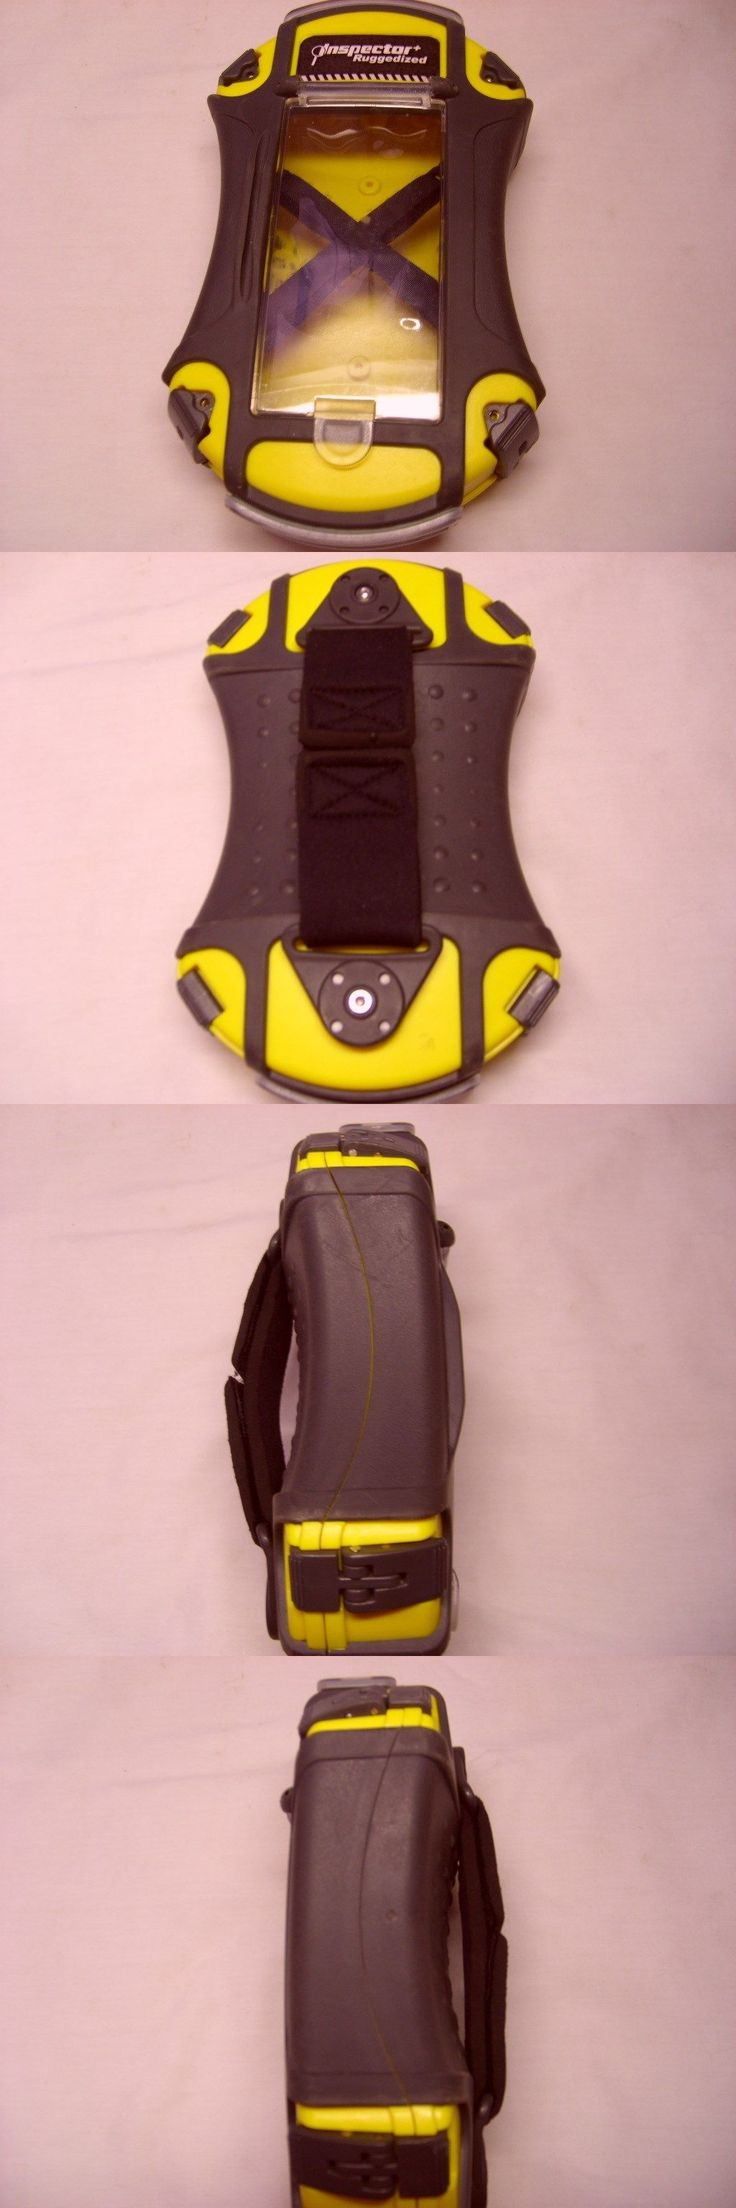 PDA Accessories: Open-Box Otterbox 3600 Yellow Rugged Universal Pda Case (3600-05-K1) -> BUY IT NOW ONLY: $85 on eBay!